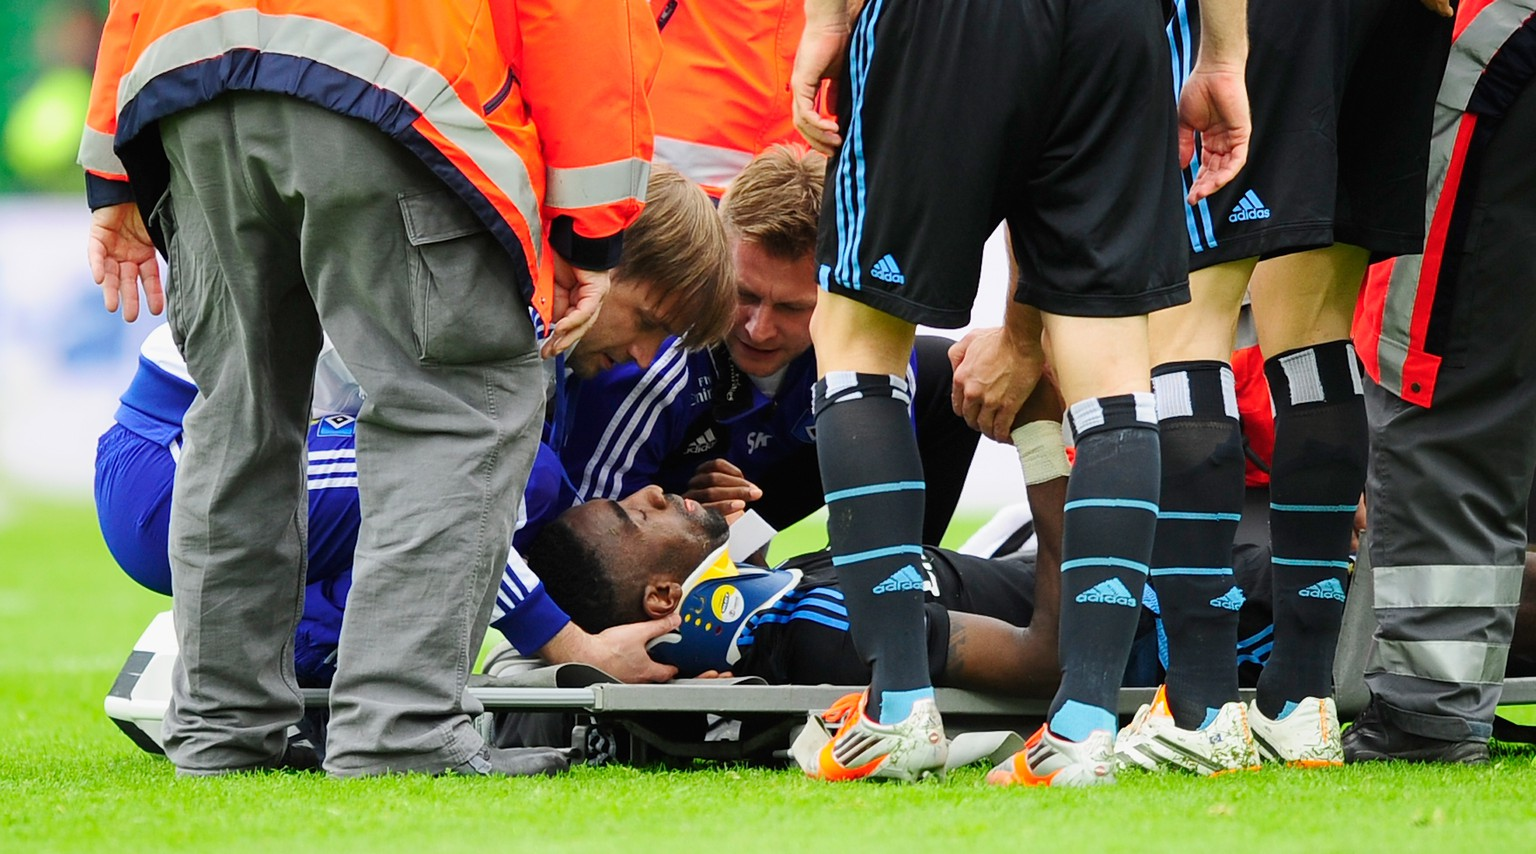 FUERTH, GERMANY - MAY 18:  Johan Djourou (C) of Hamburg receives medical treatment during the Bundesliga Playoff Second Leg match between SpVgg Greuther Fuerth and Hamburger SV at Trolli-Arena on May 18, 2014 in Fuerth, Germany.  (Photo by Lennart Preiss/Bongarts/Getty Images)